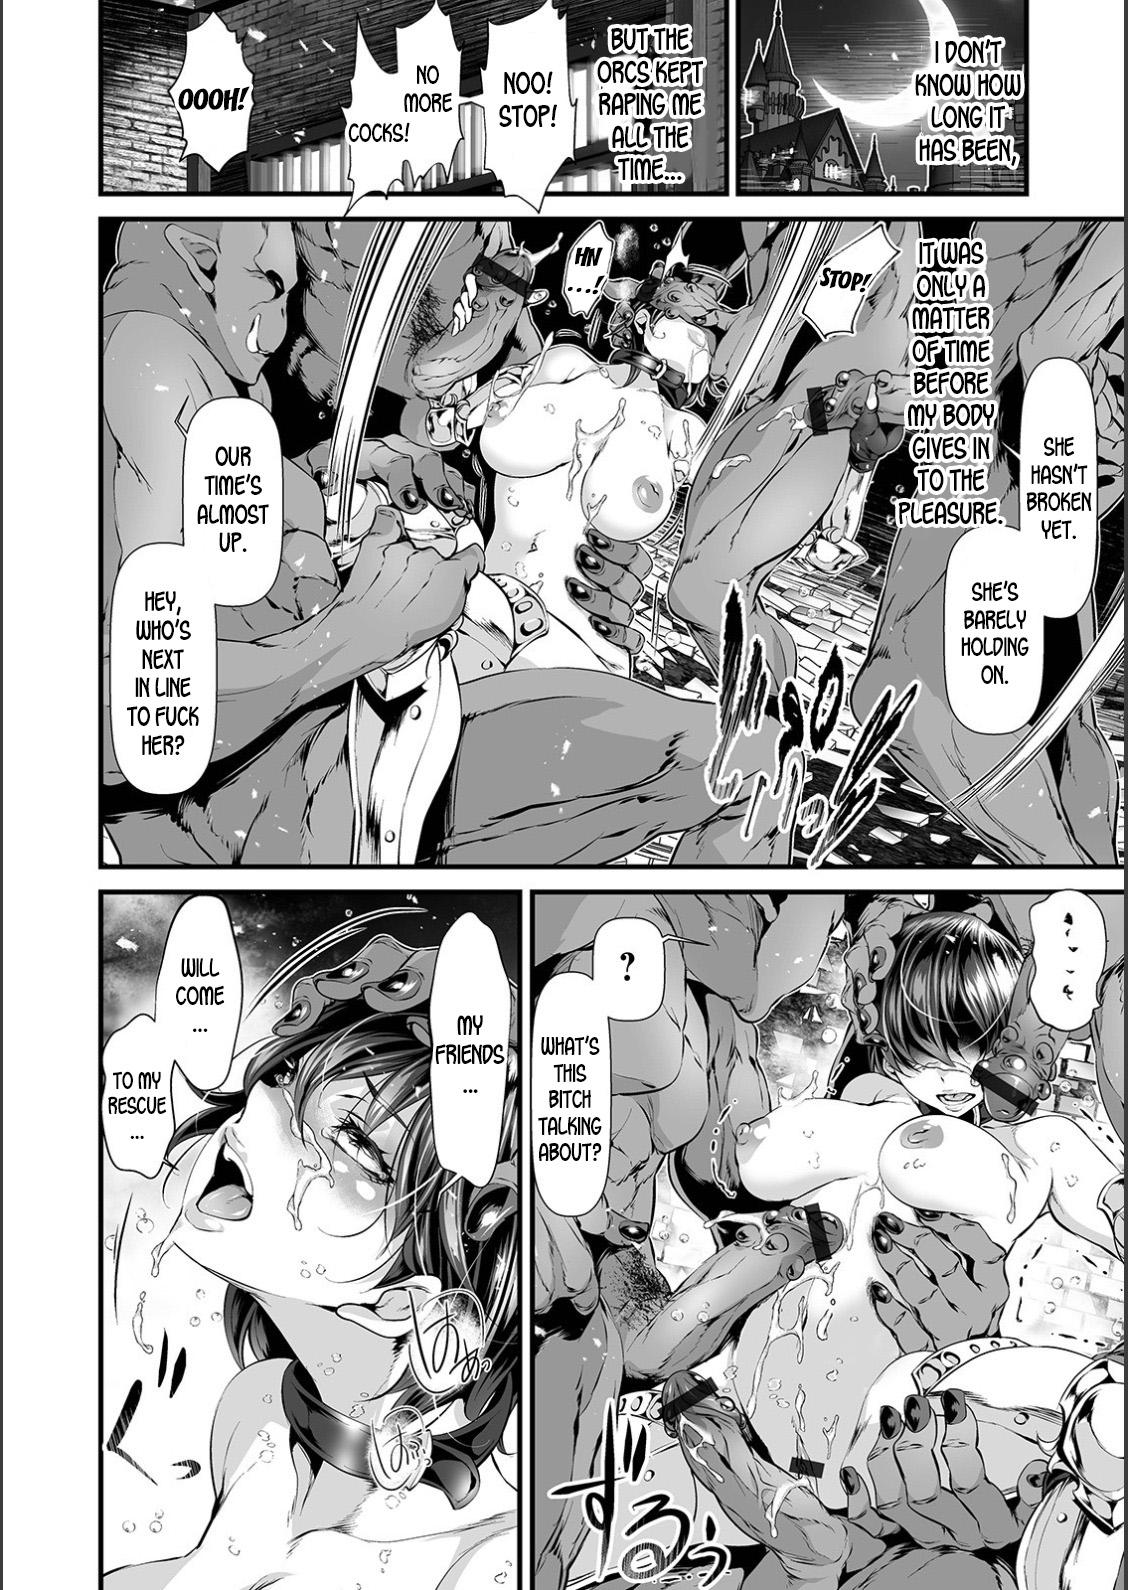 Nyotaika Eiyuu Orc Chinpo Haiboku Kitan | The Mysterious Story of a Genderbent Hero being Defeated by Orc Cocks 9